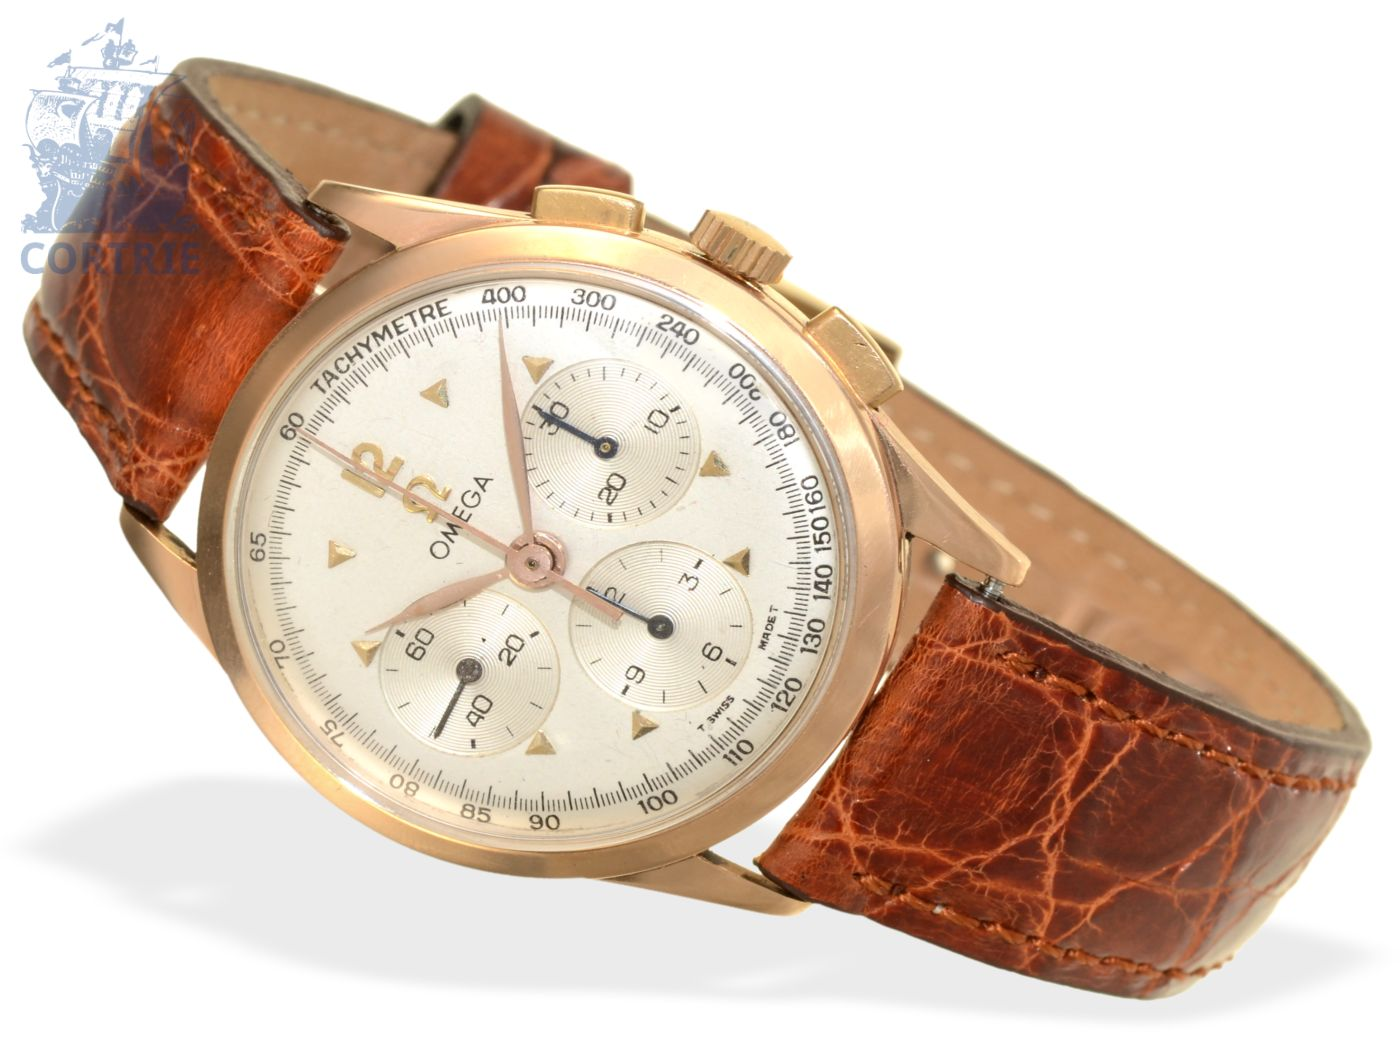 Wristwatch: very beautiful and rare Omega chronograph, pink gold, from 1959-